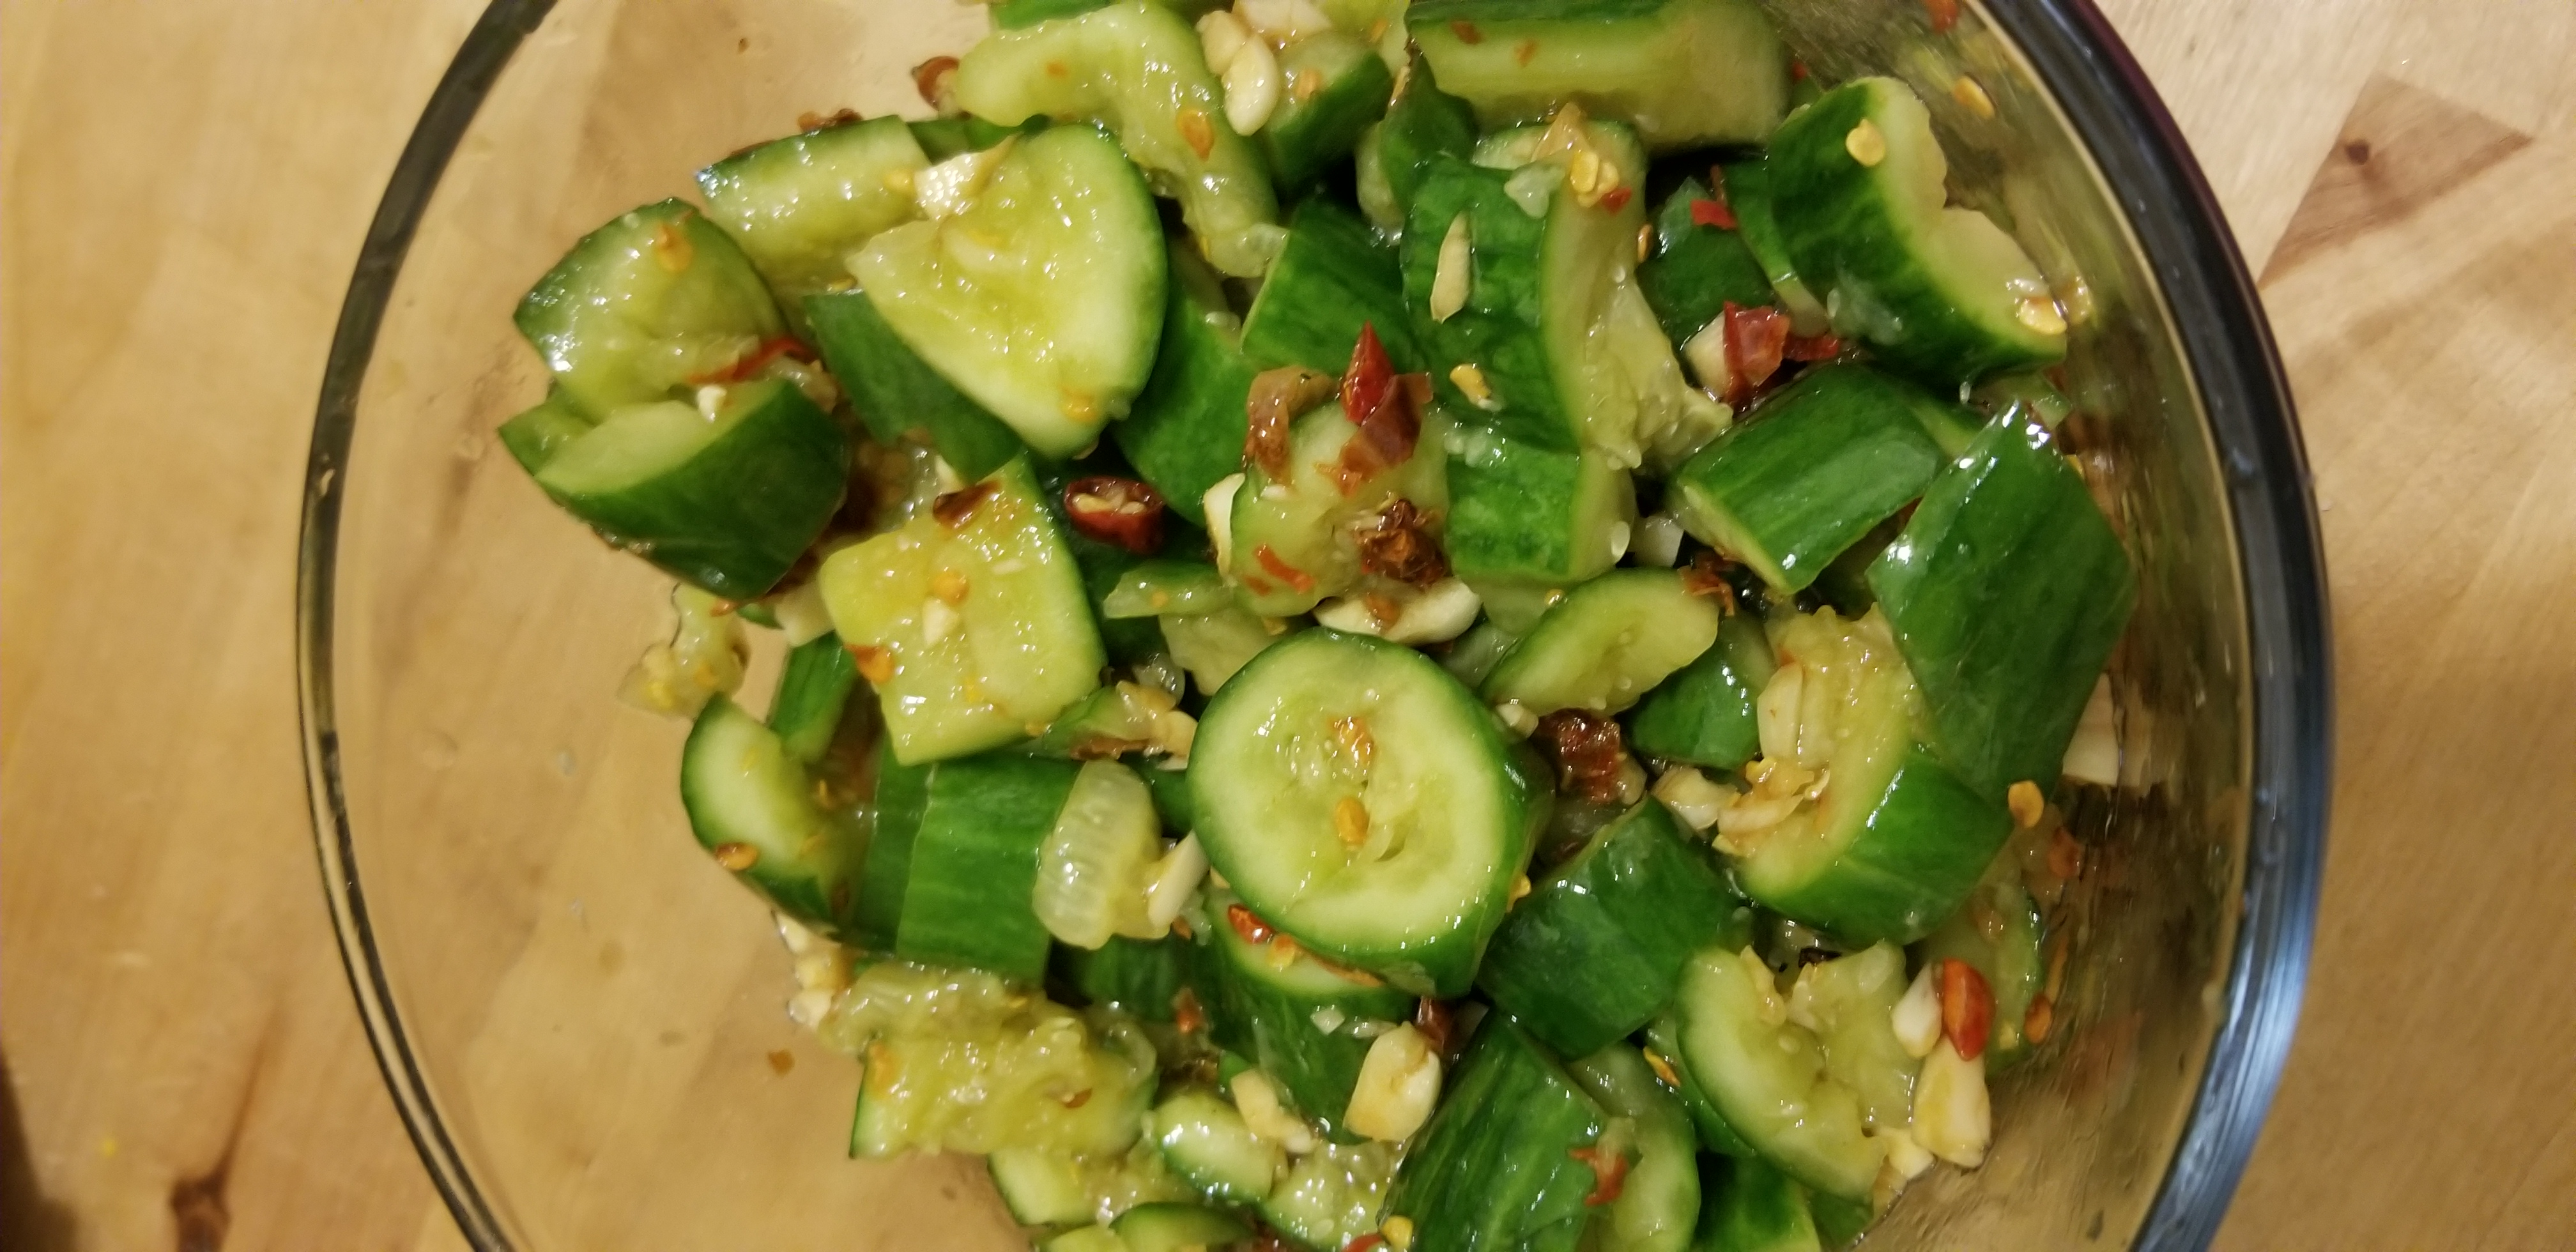 Saucy cucumber side-salad*